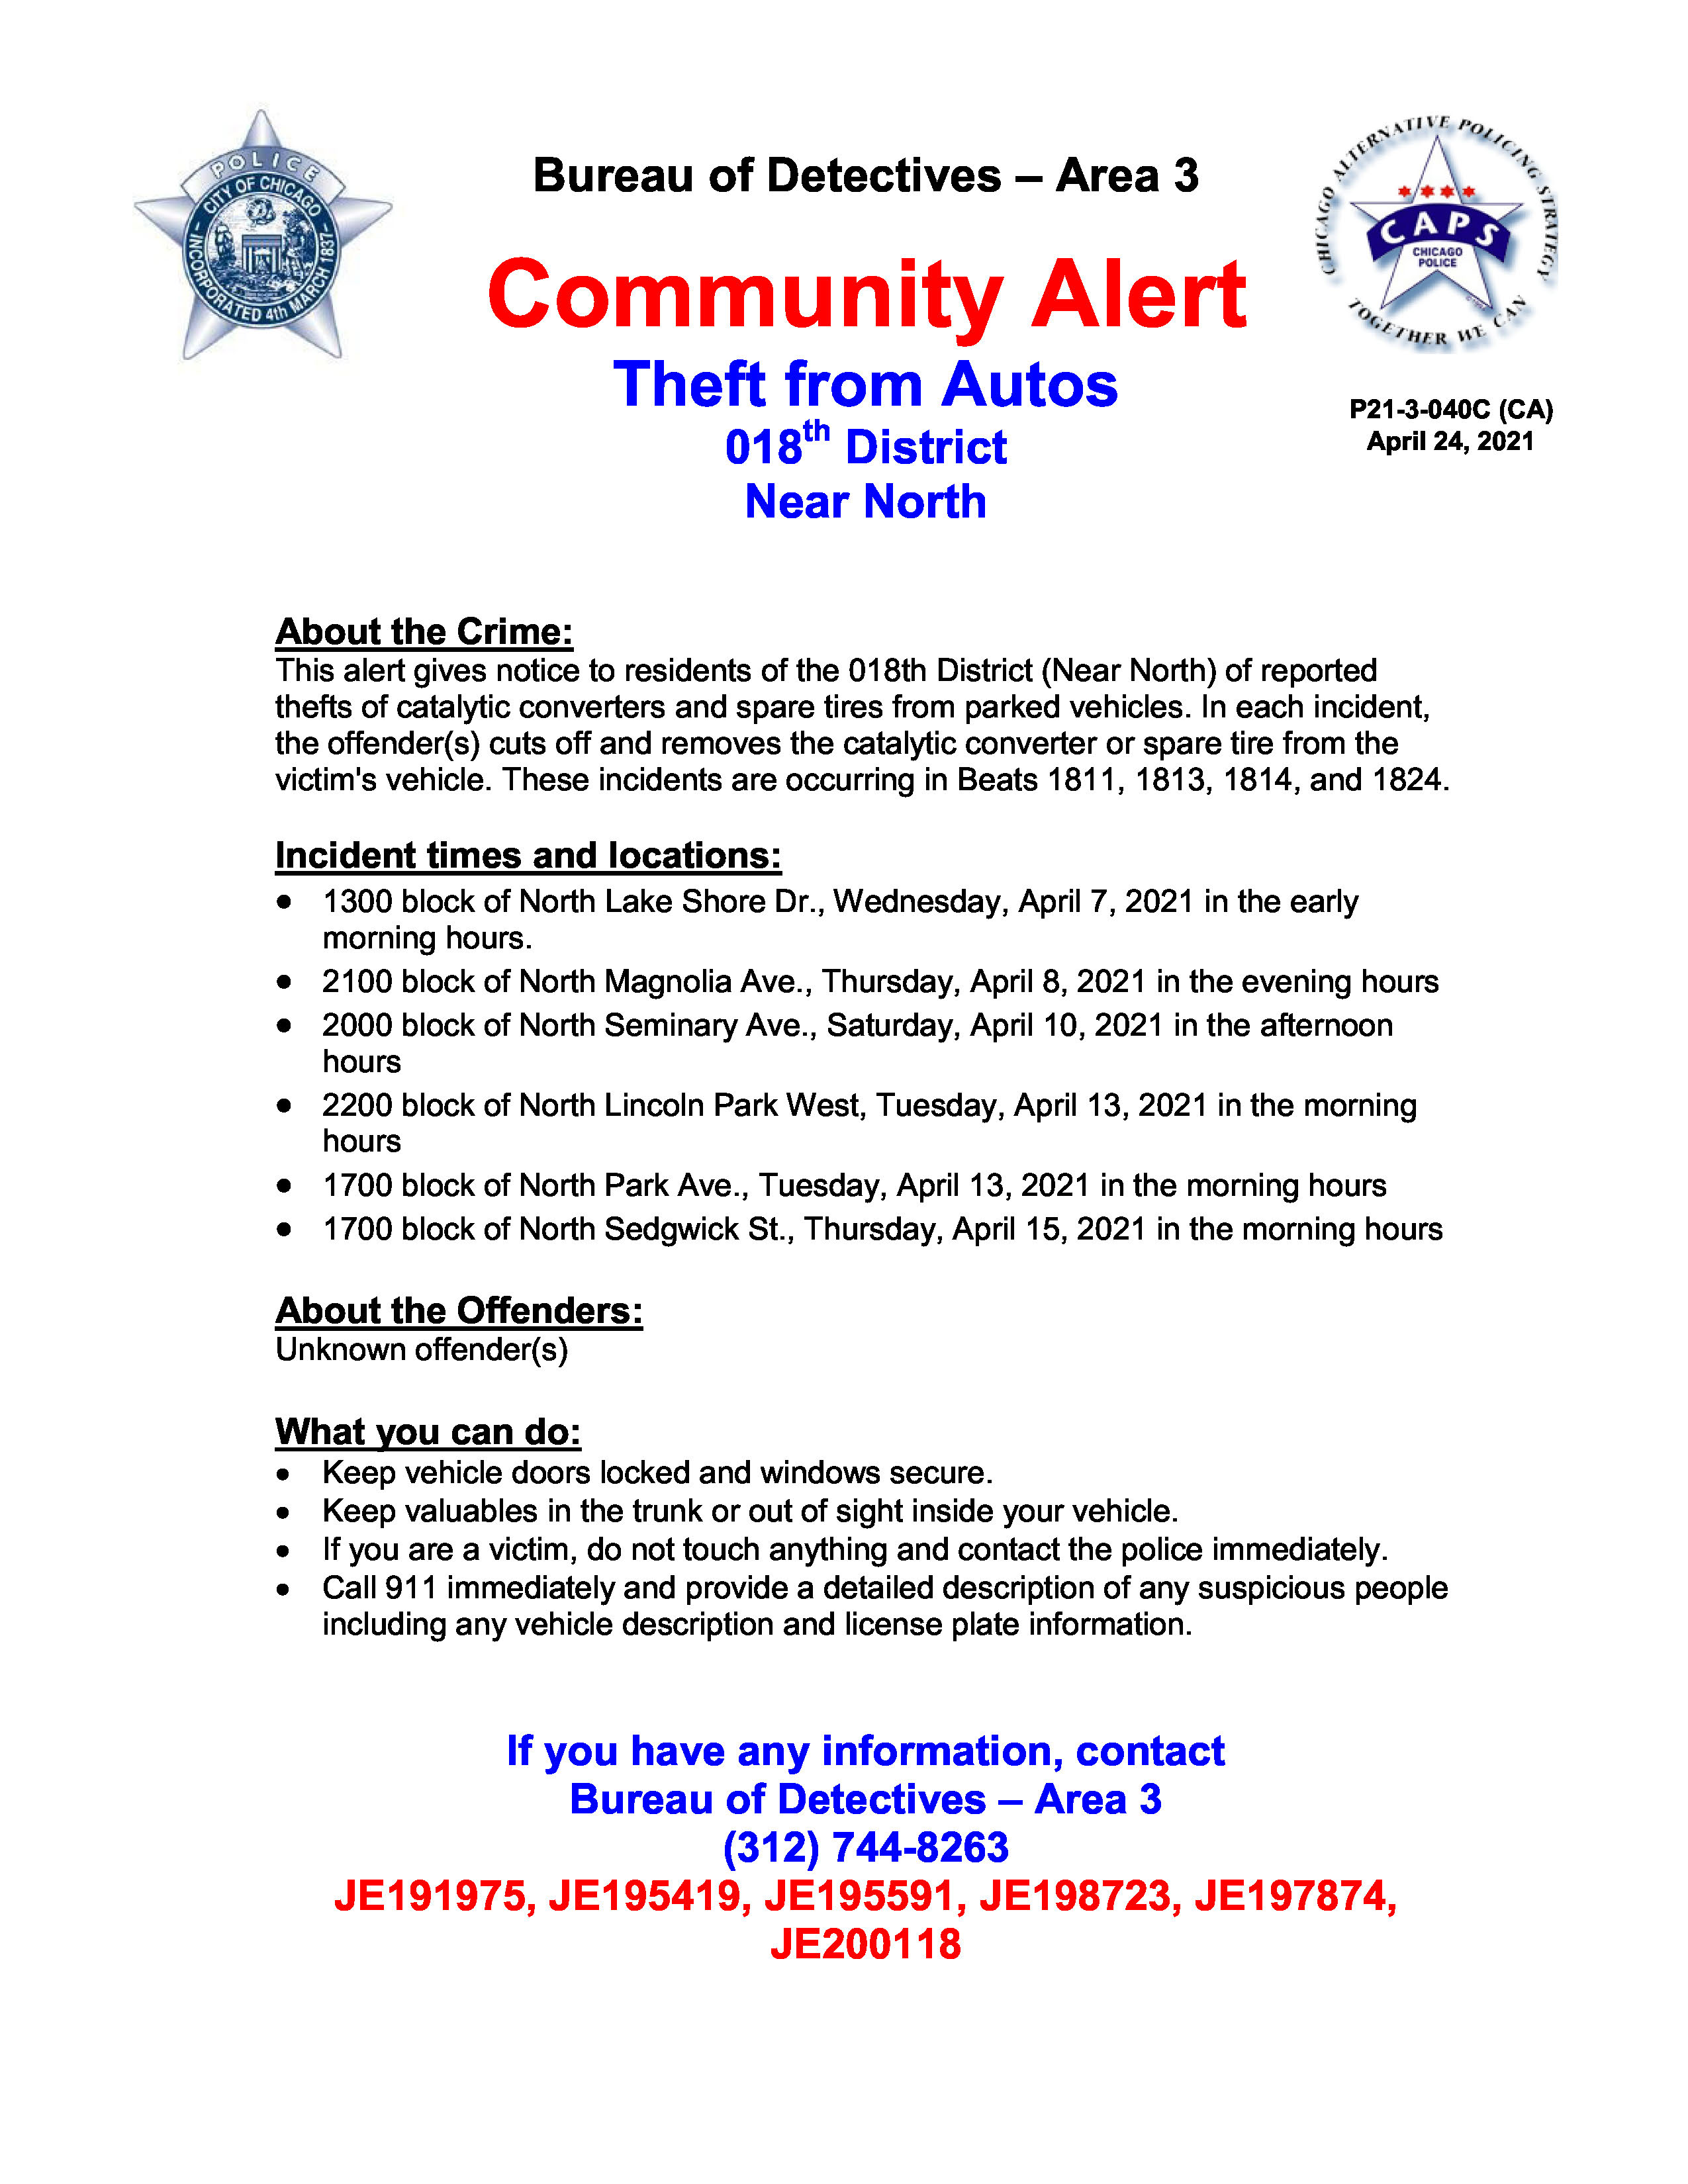 Community Alert Theft from Auto 24 APR 21_Page_1